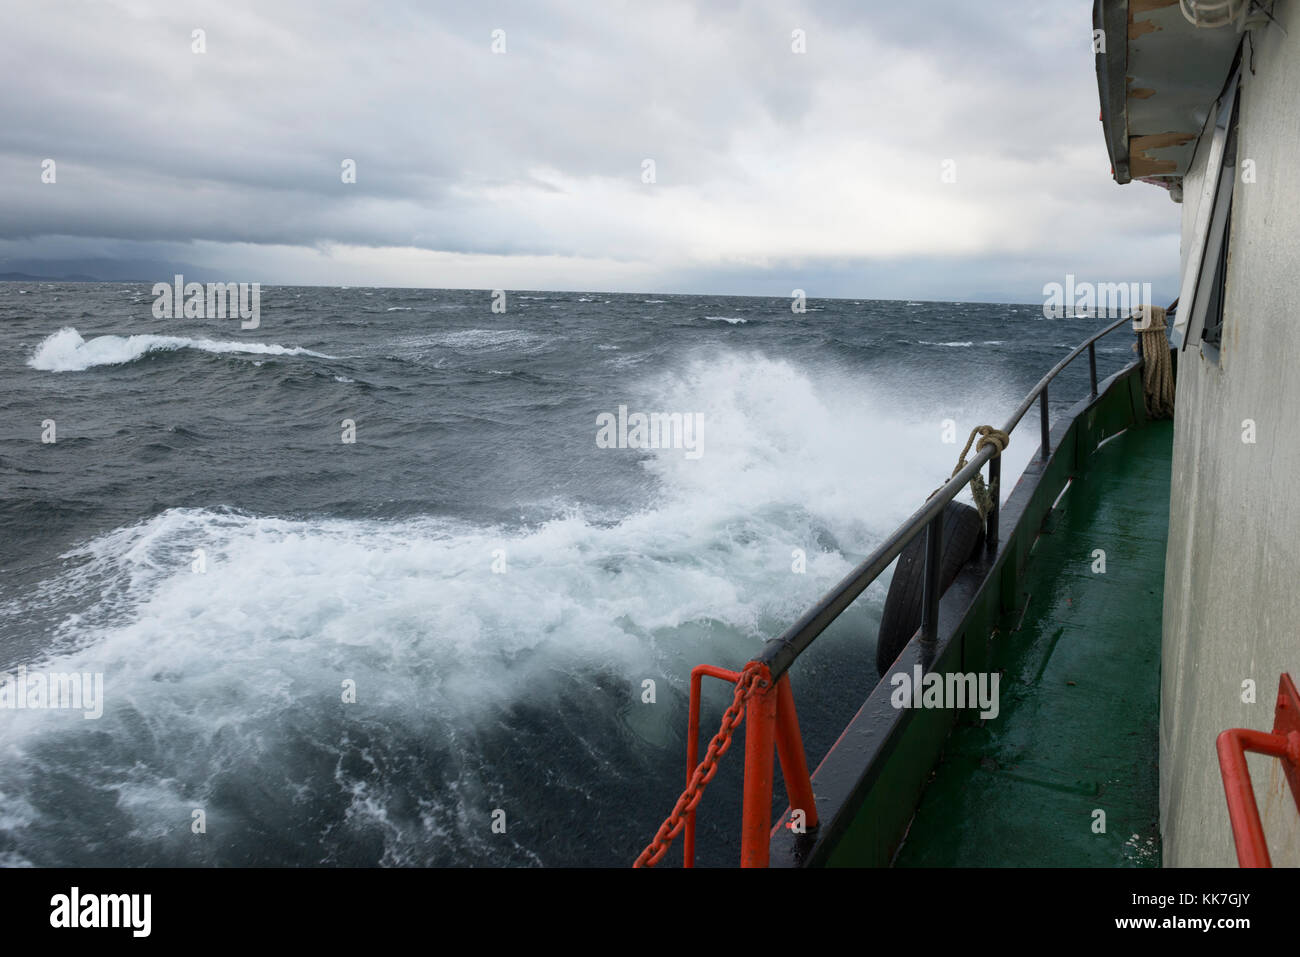 Boat navigating in the Straits of Magellan, Chile - Stock Image